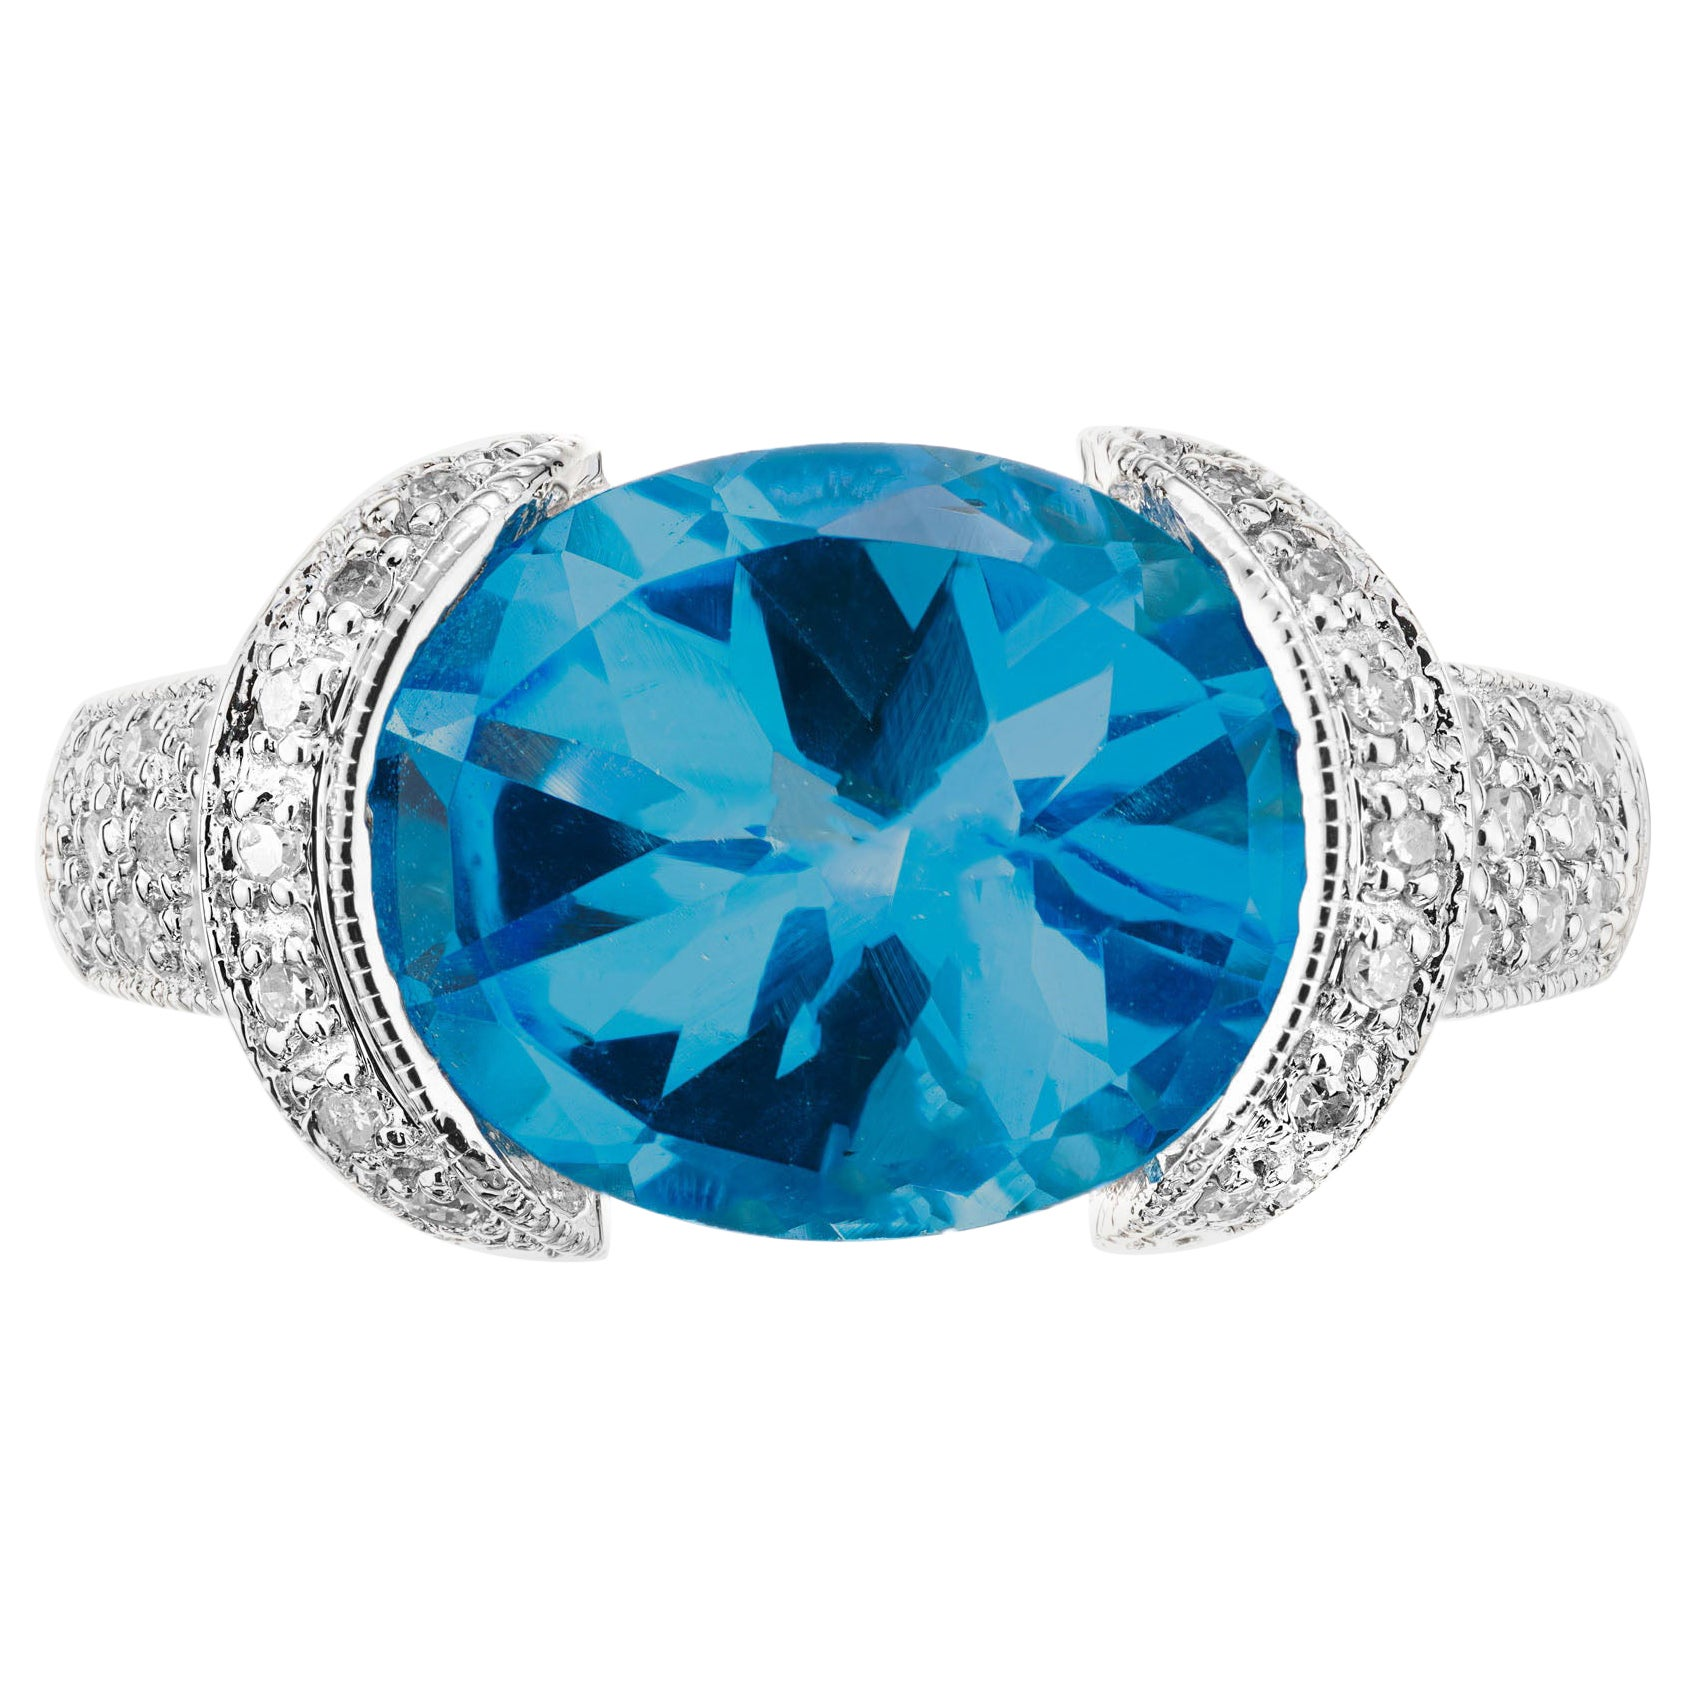 4.25 Carat London Blue Topaz White Gold Cocktail Ring